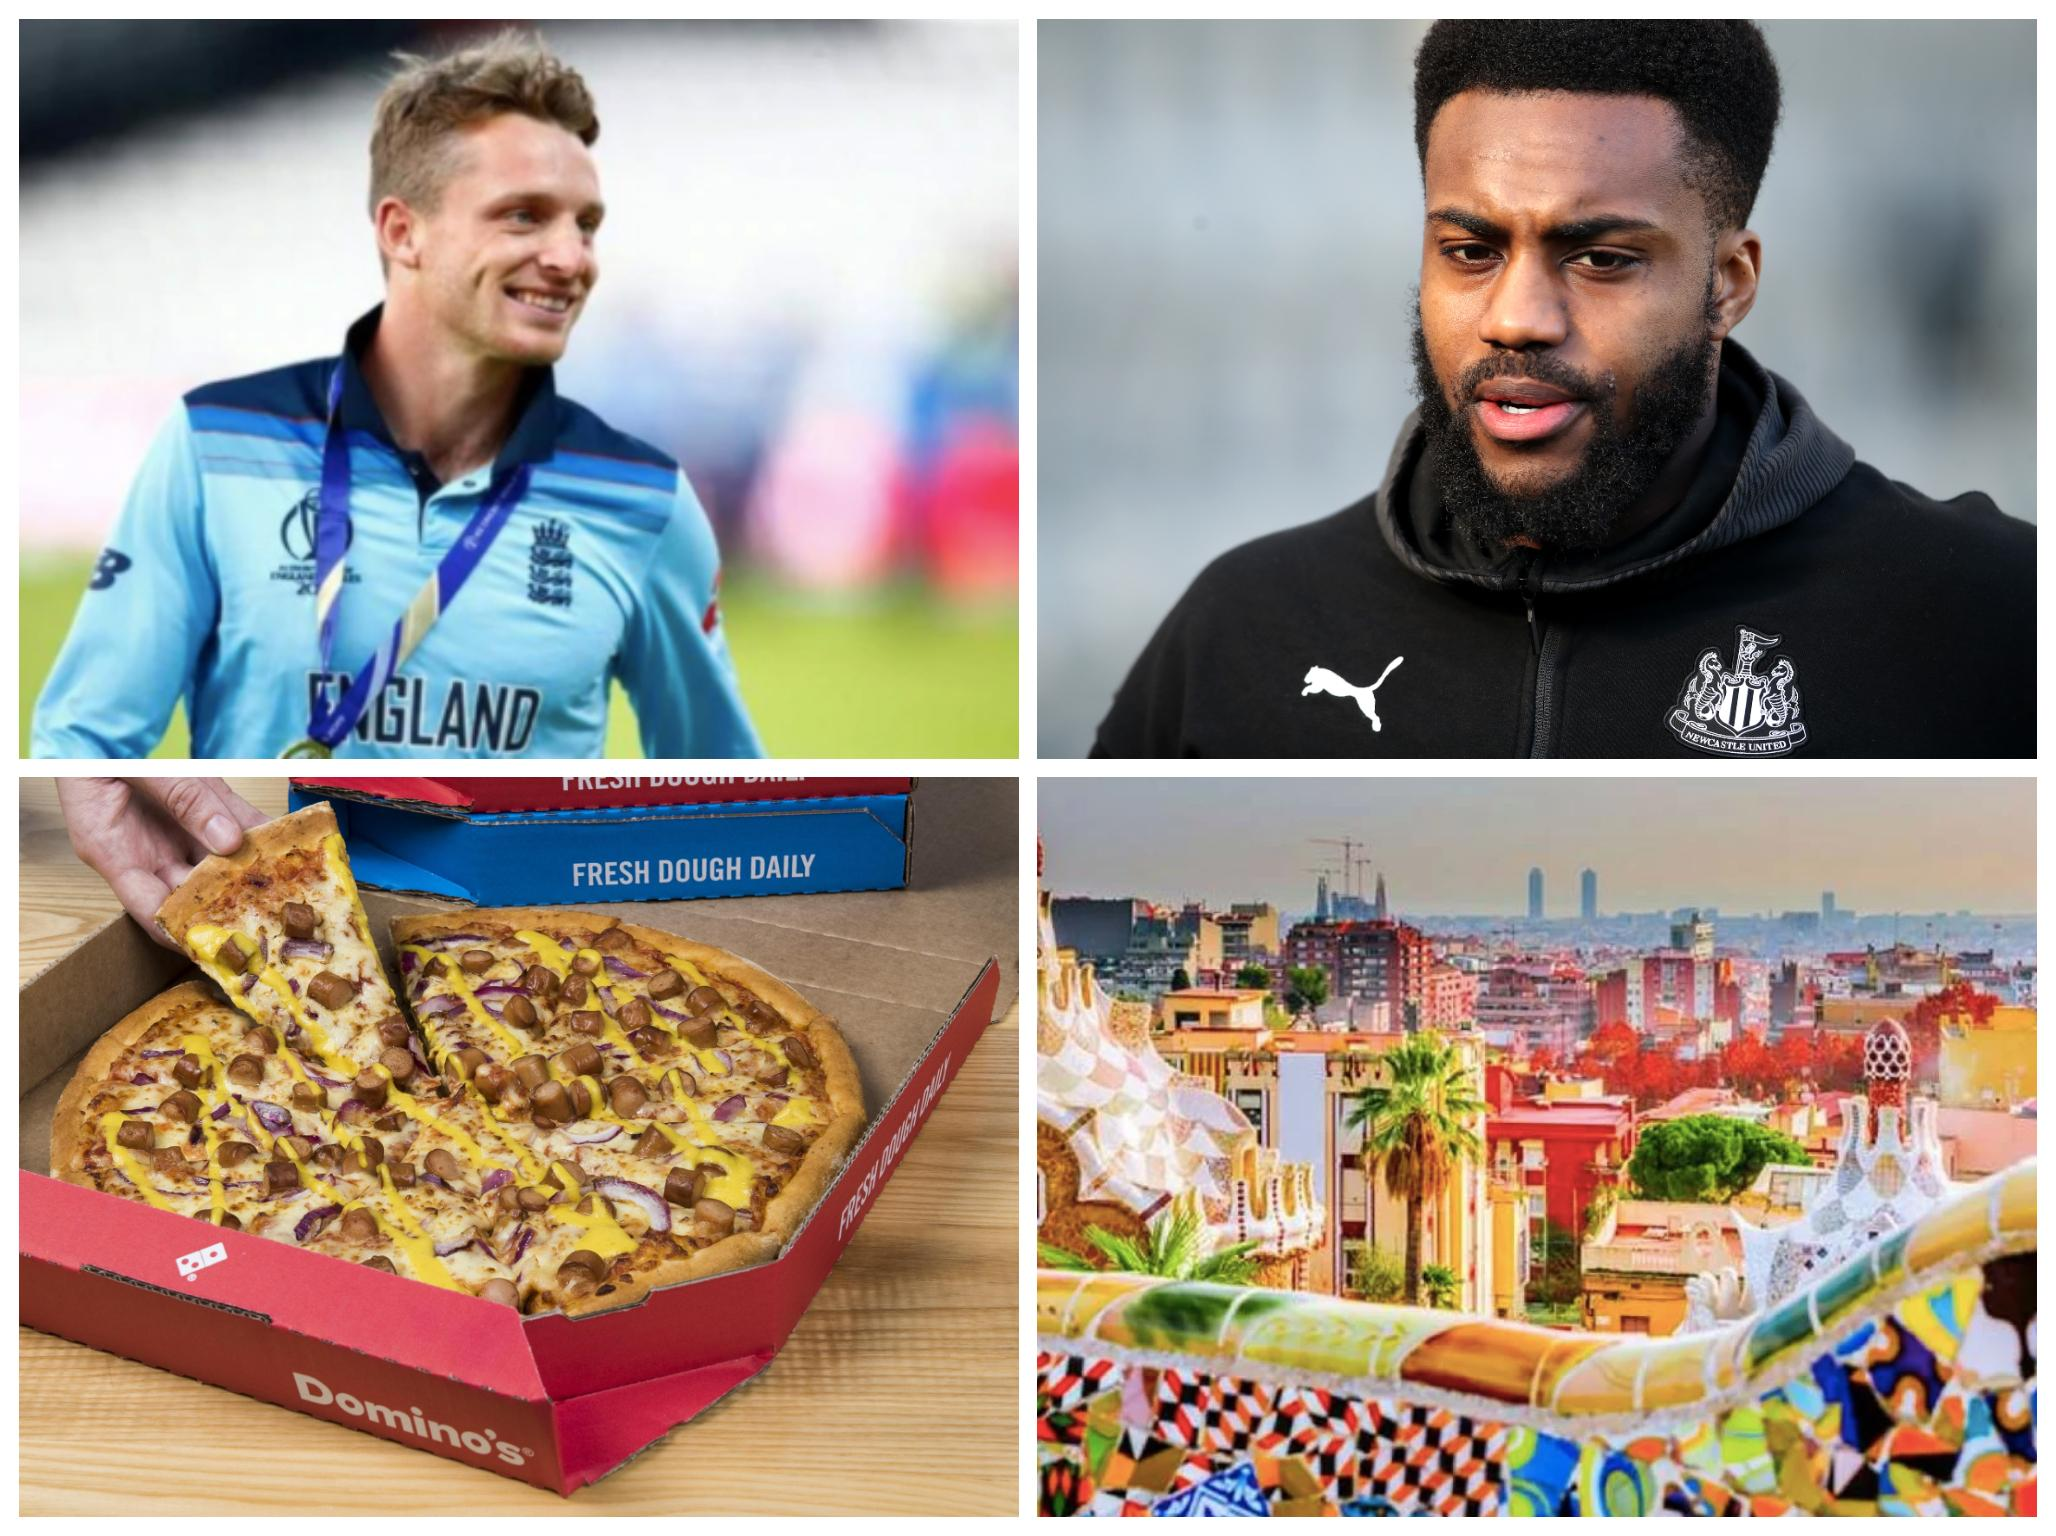 Reasons for sports fans to stay positive: Danny Rose's pizza delivery, Jos Buttler's shirt and more